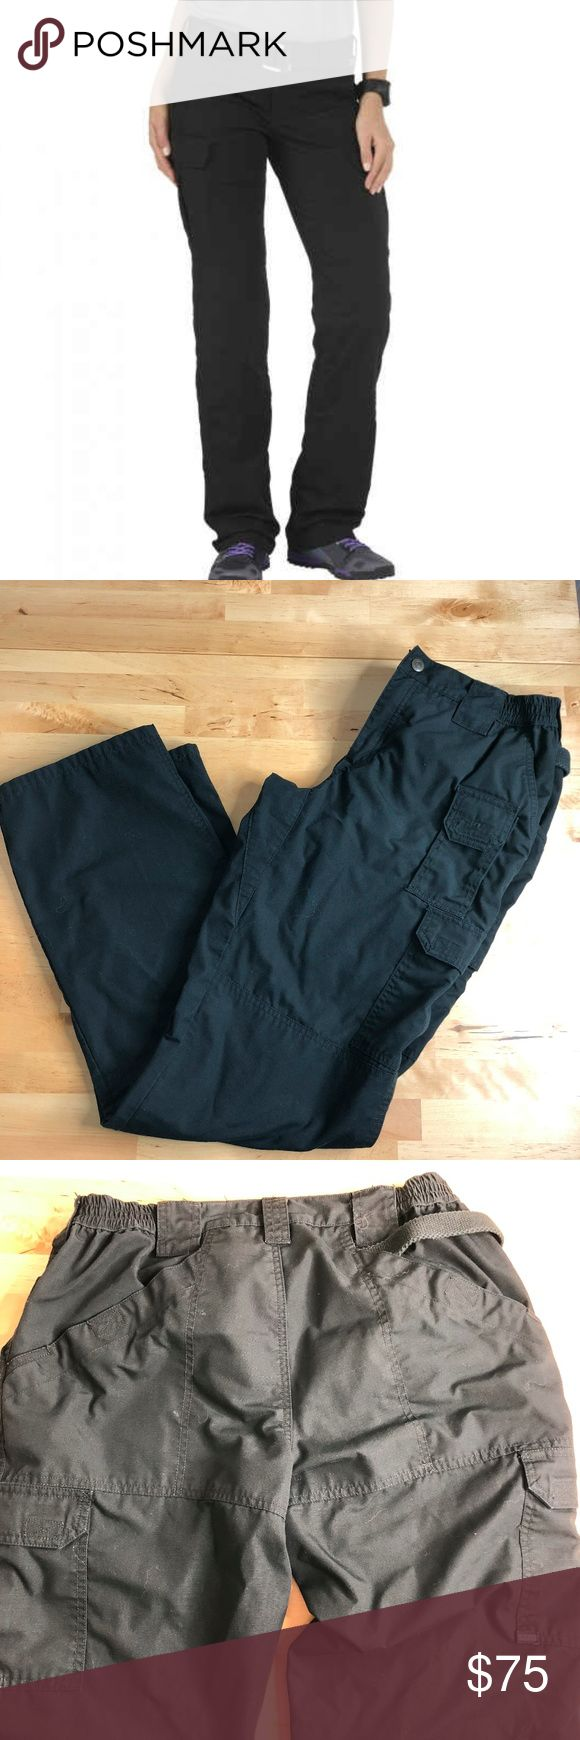 511 tactical series 14 Excellent condition 511 tactical brand in size 15.  Waist band has some stretchy areas. Zip fly.  Look at pictures for my details. Inseam: 34.5 inches.  Many pockets on pants. Two front pockets Two back pockets with velcro closure front right velcro pocket with velcro flap Front left pocket with velcro flap 511 Tactical Series Pants